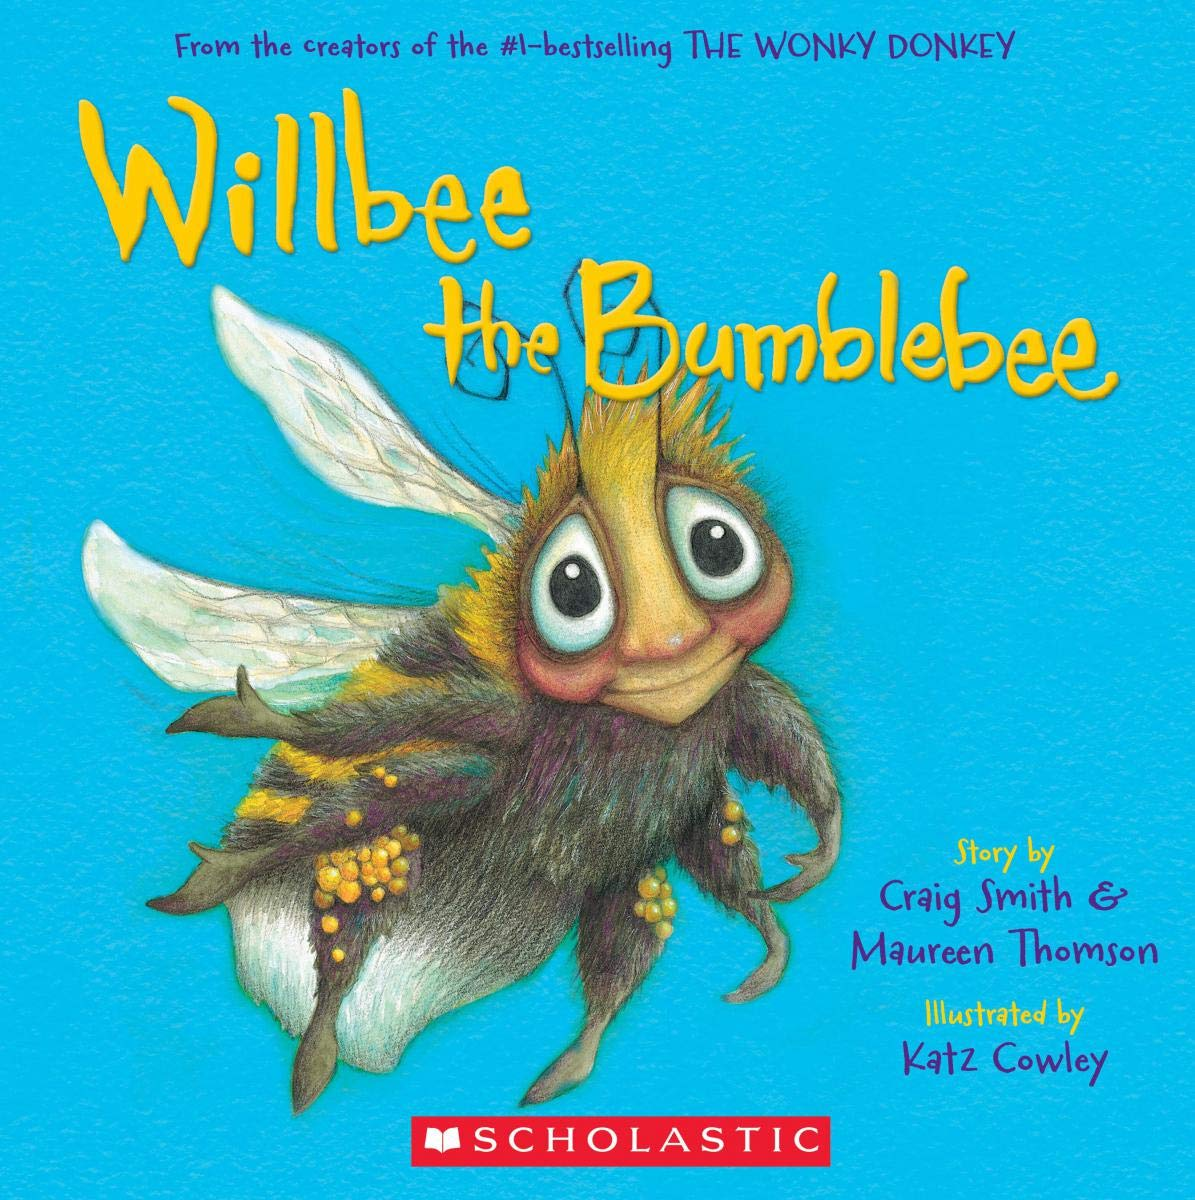 Scholastic Paperbacks; Reprint edition (March 26, 2019)